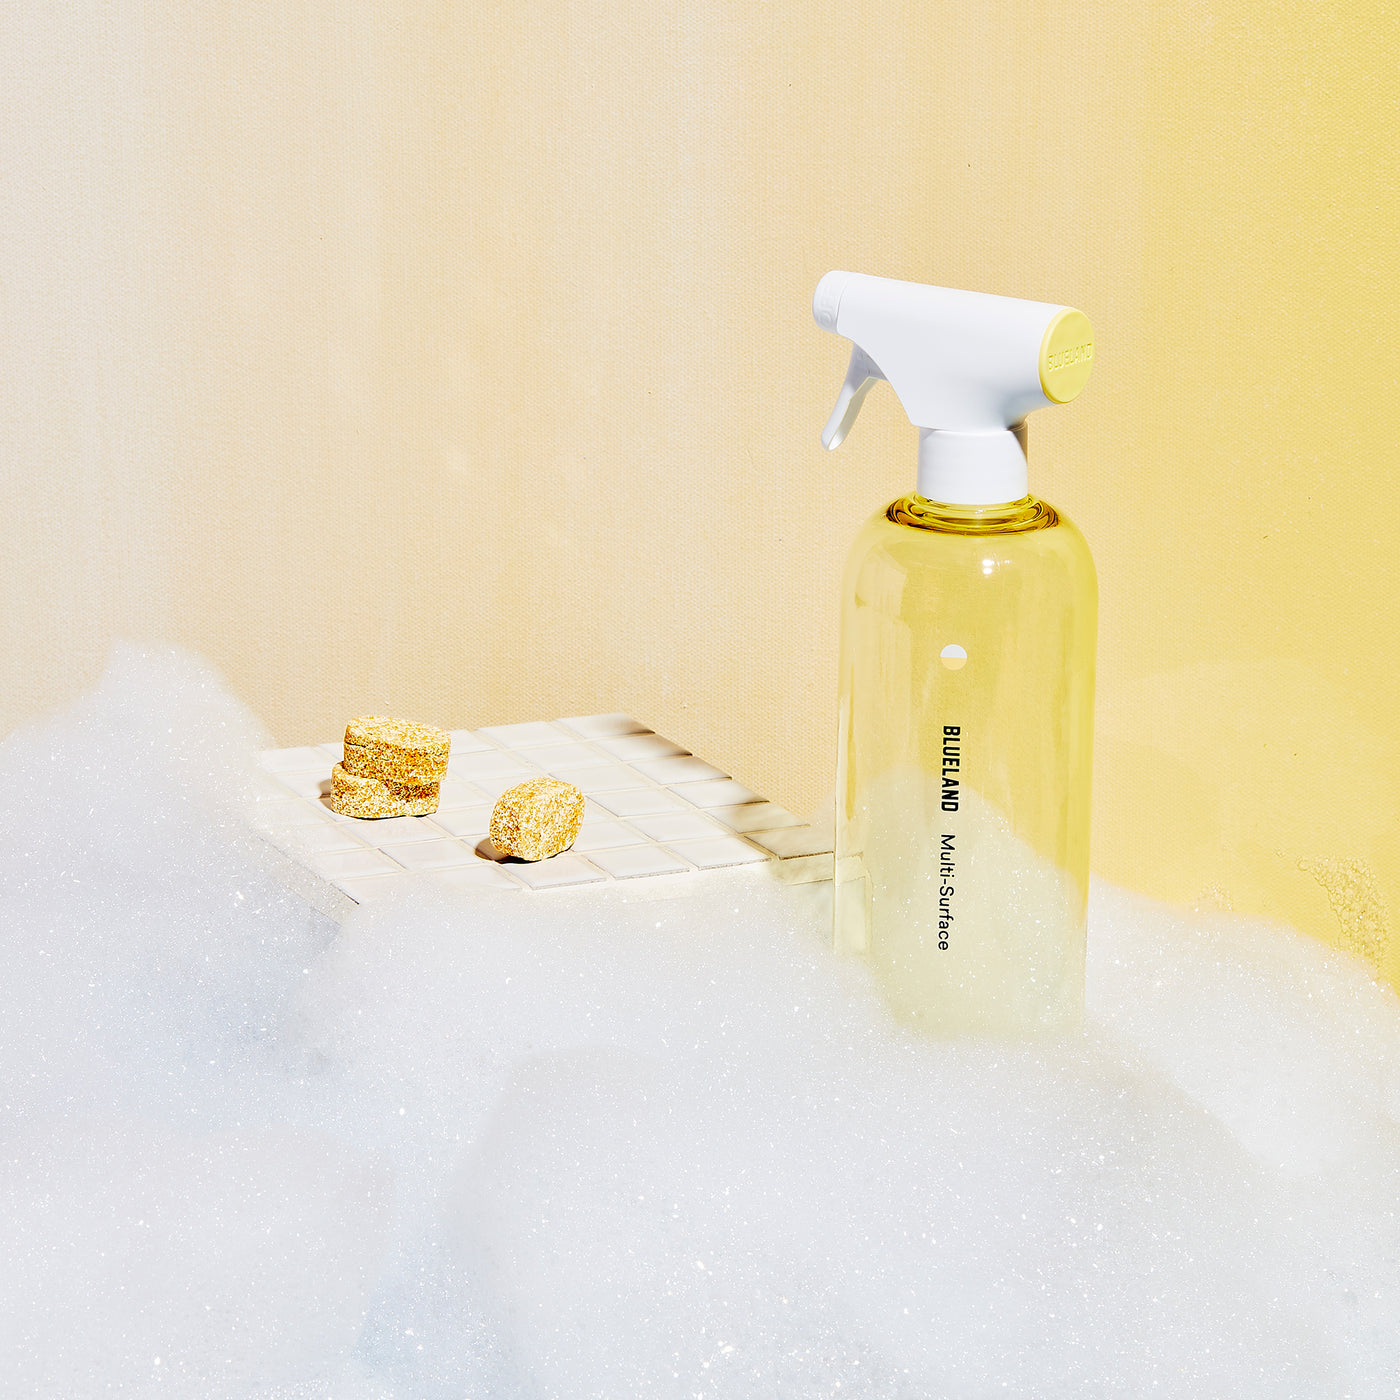 Yellow Multi-Surface Cleaner Forever Bottle with cleaning tablets laid out on white tiled surface and yellow wall behind. Foamy bubbles surround the bottles and tile.